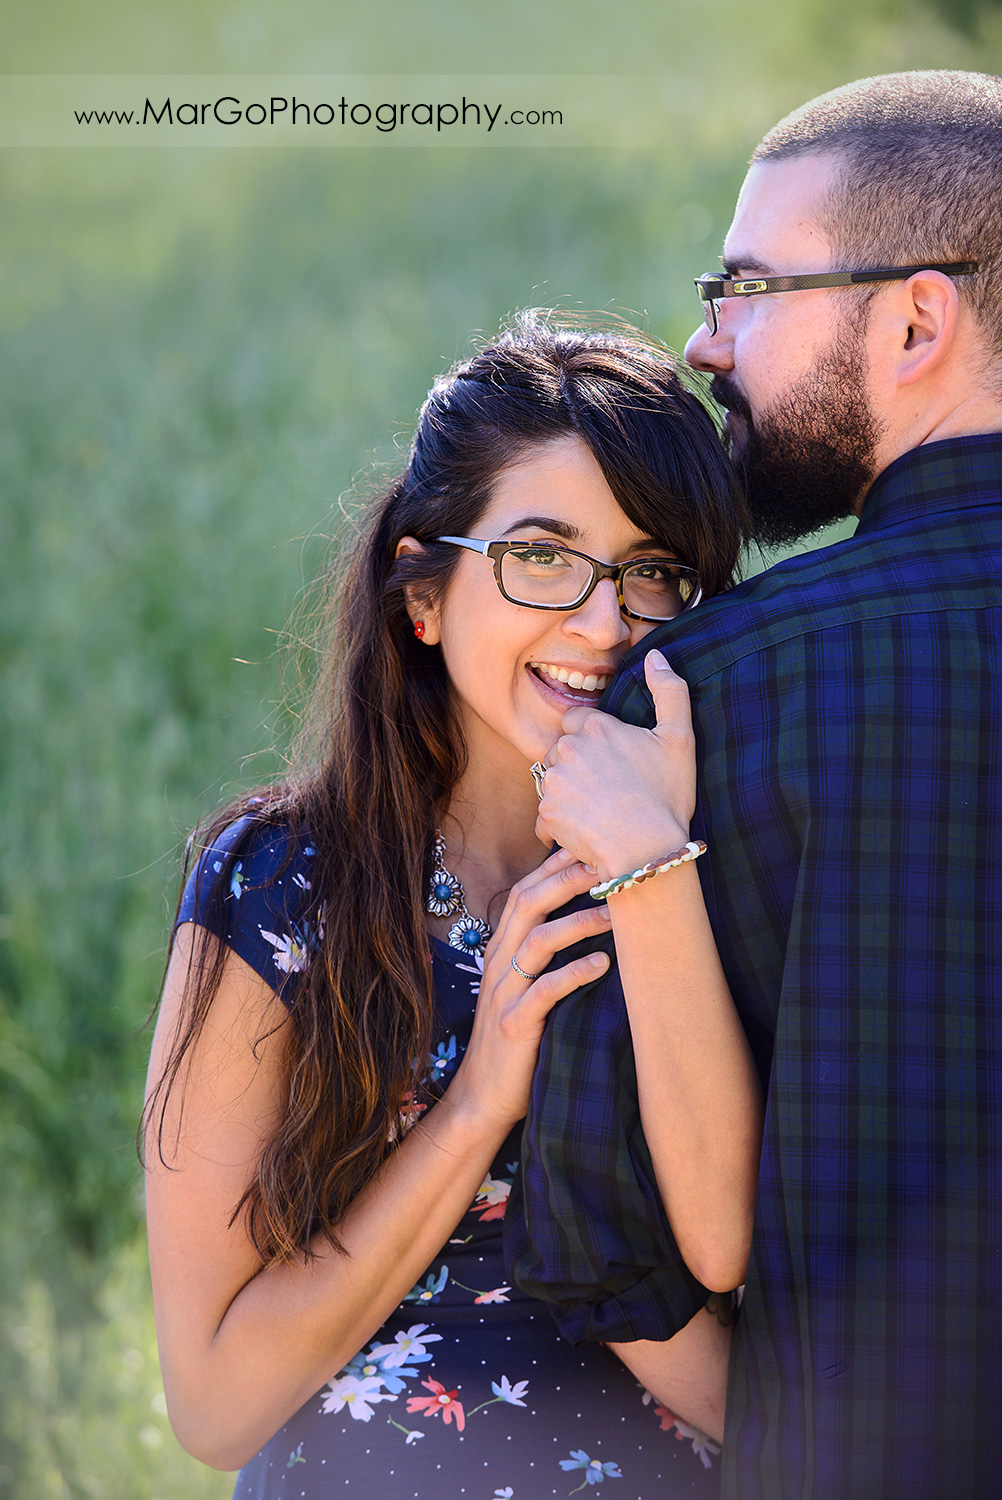 portrait of woman in blue dress looking into camera and holding hands on arm of man in blue shirt during engagement session at Sunol Regional Wilderness